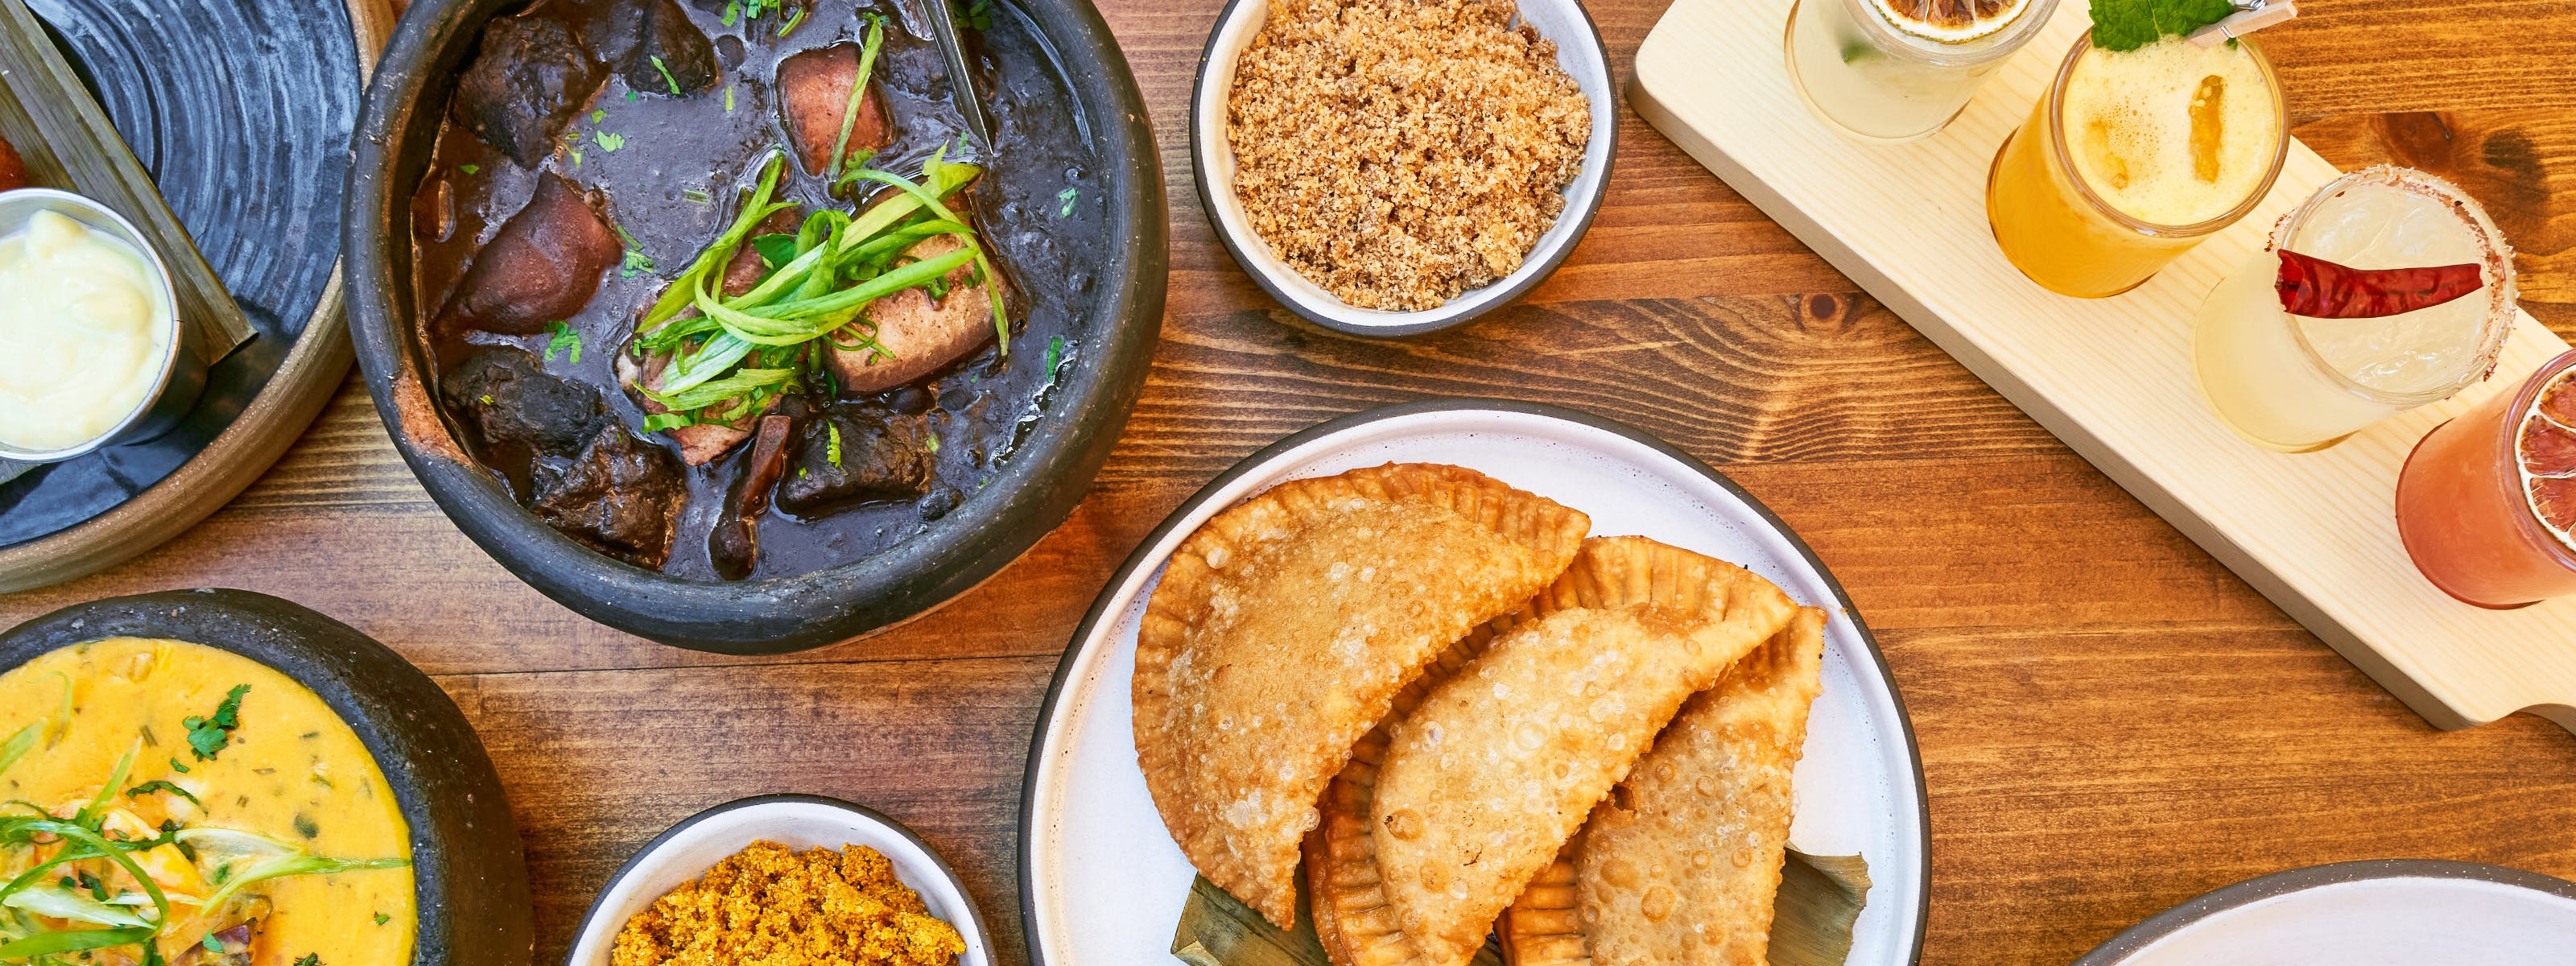 The 15 Best Brazilian Restaurants In NYC - New York - The Infatuation